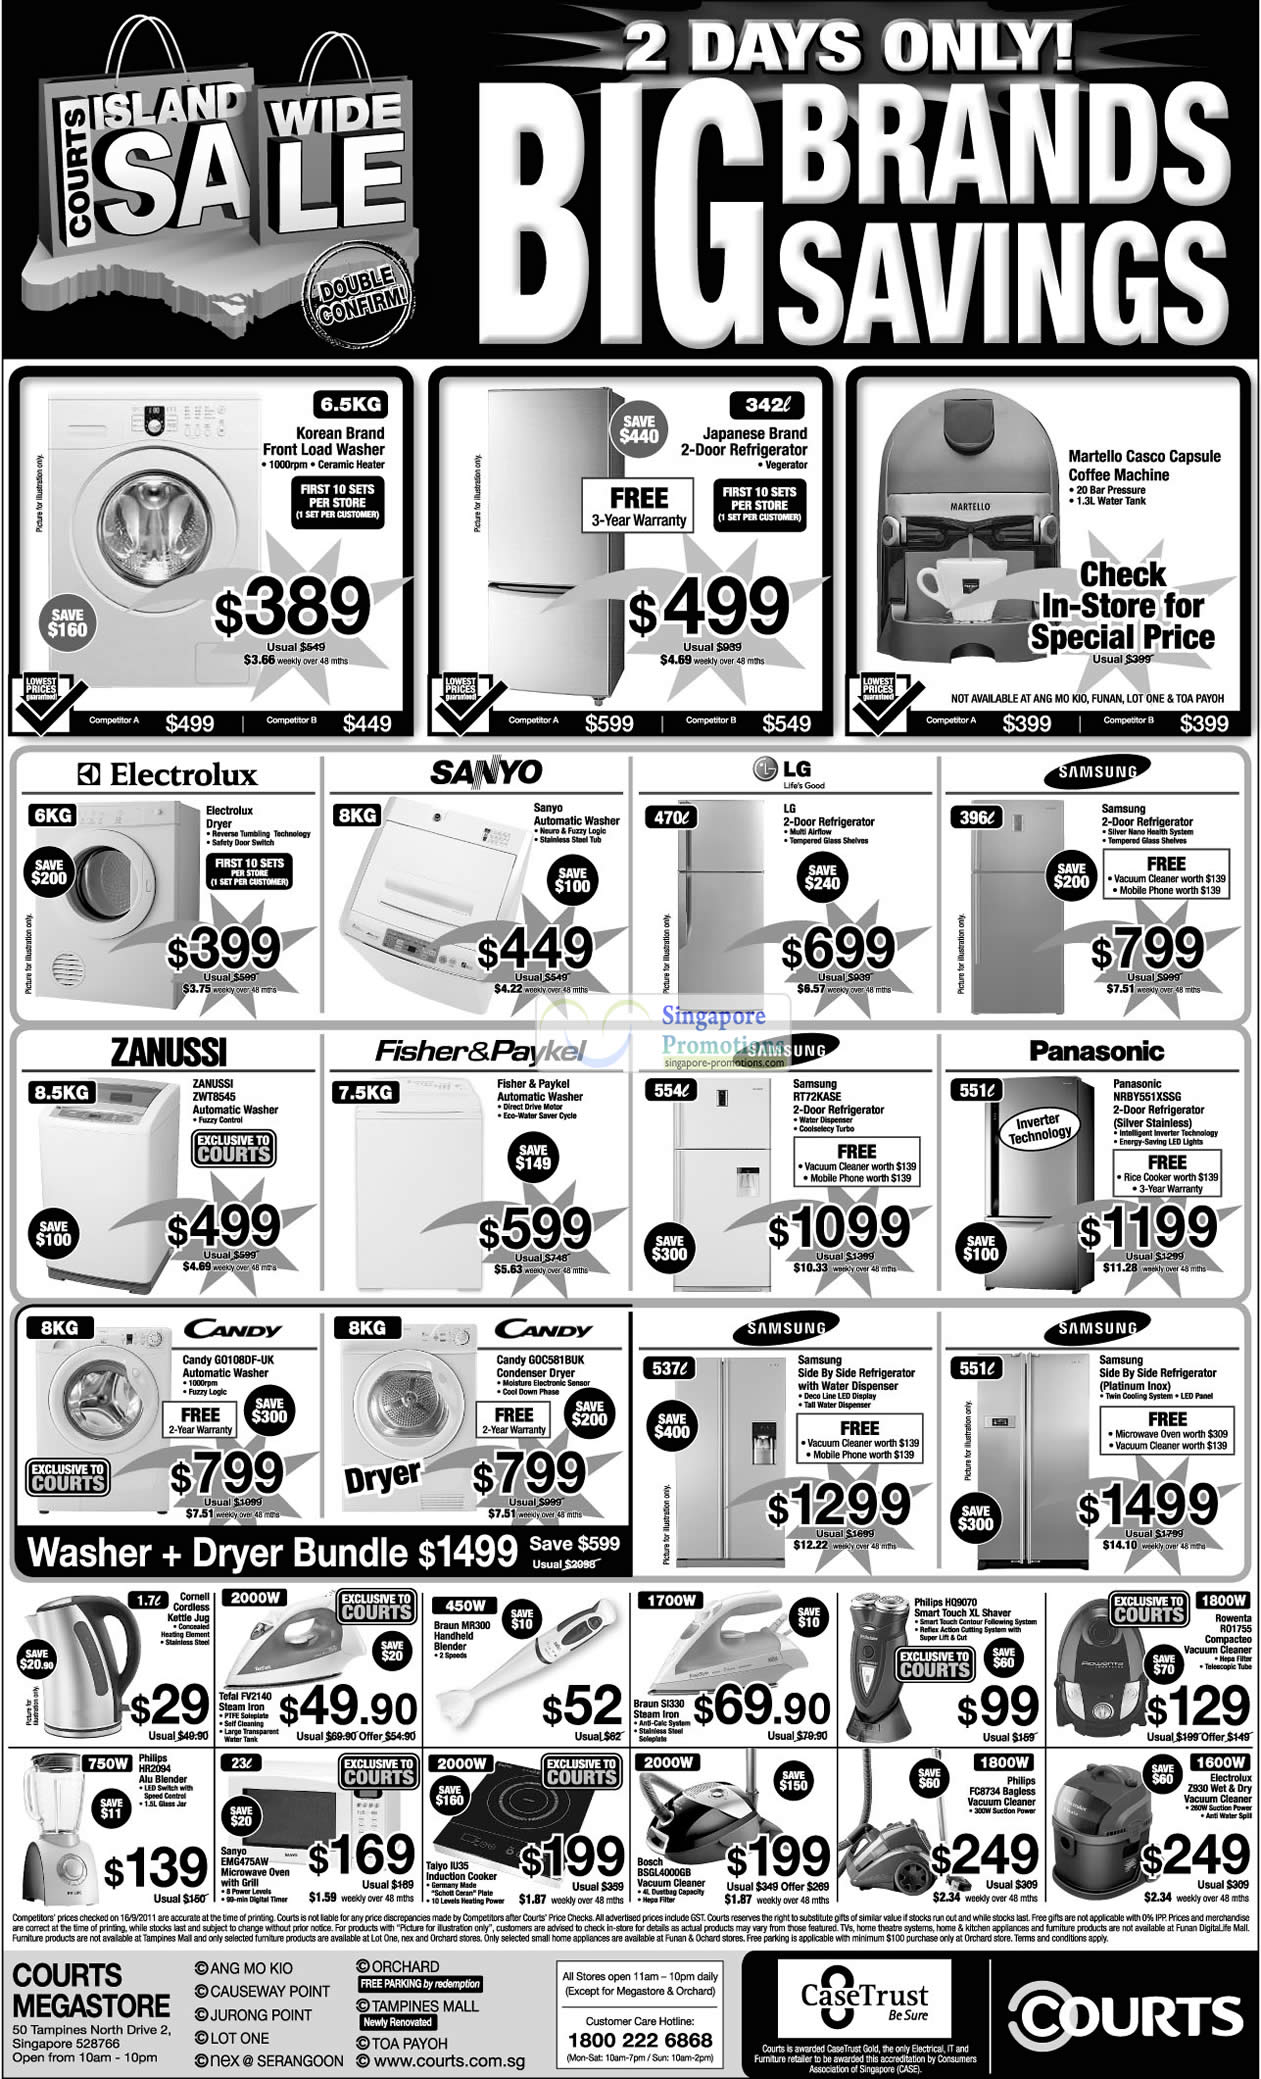 17 Sep Panasonic NRBY551XSSG Fridge, Samsung RT72KASE, Zanussi ZWT8545 Washing Machine, Candy GO108DF-UK, GOC581BUK Condenser Dryer